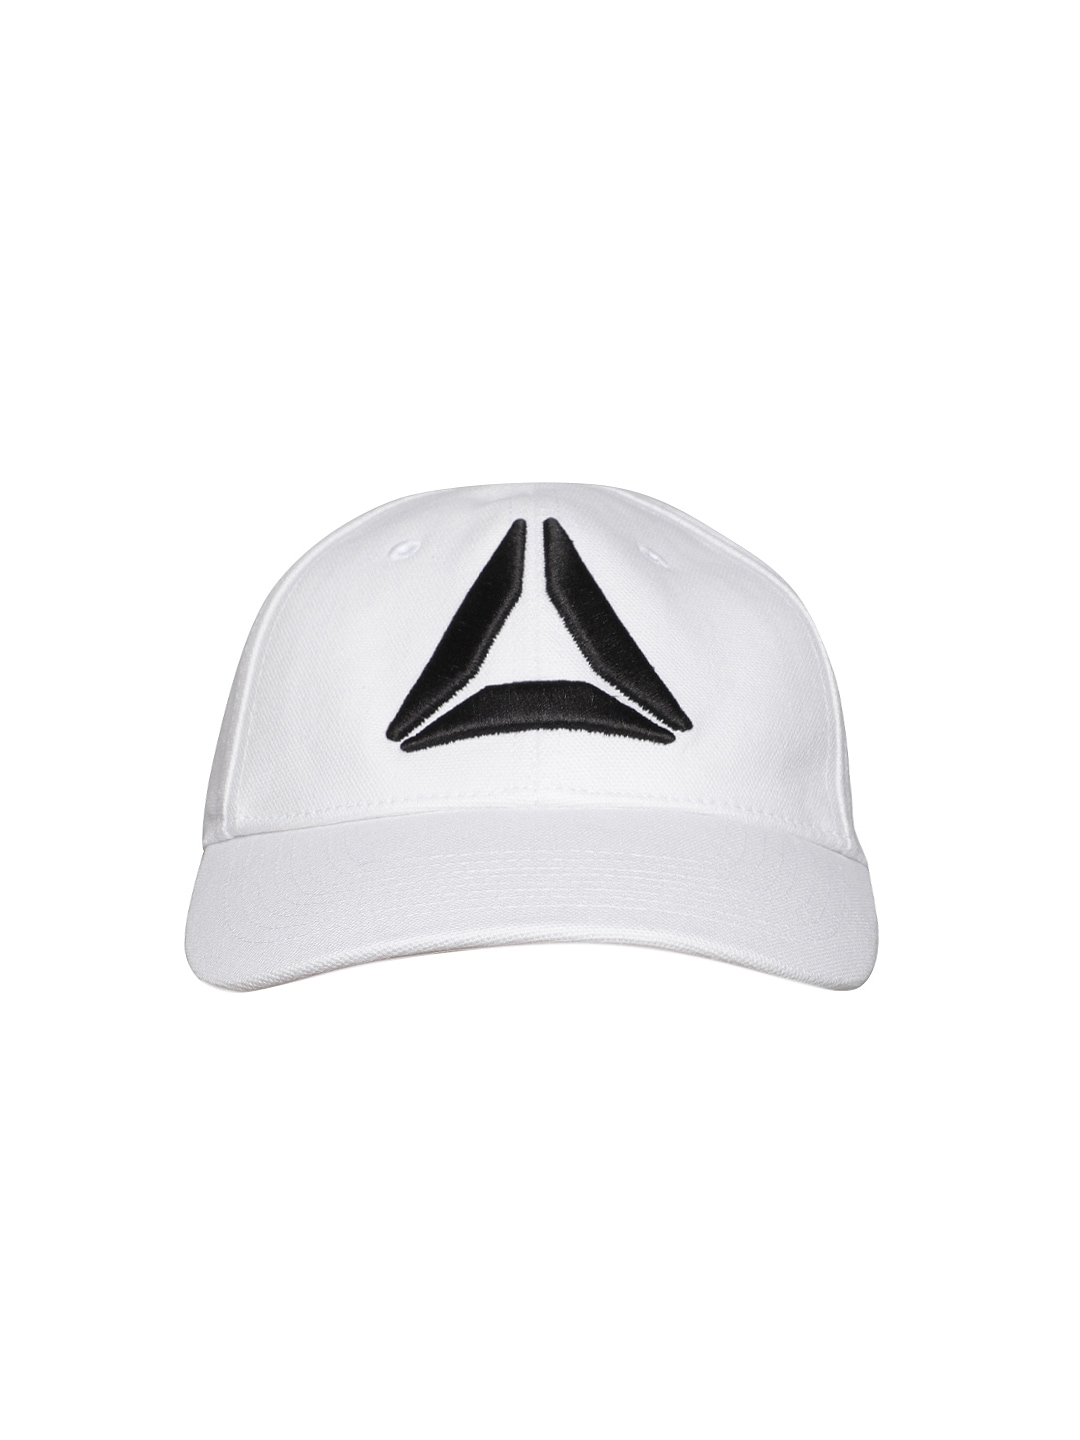 fadc91a2619 Reebok Caps - Buy Reebok Caps Online in India